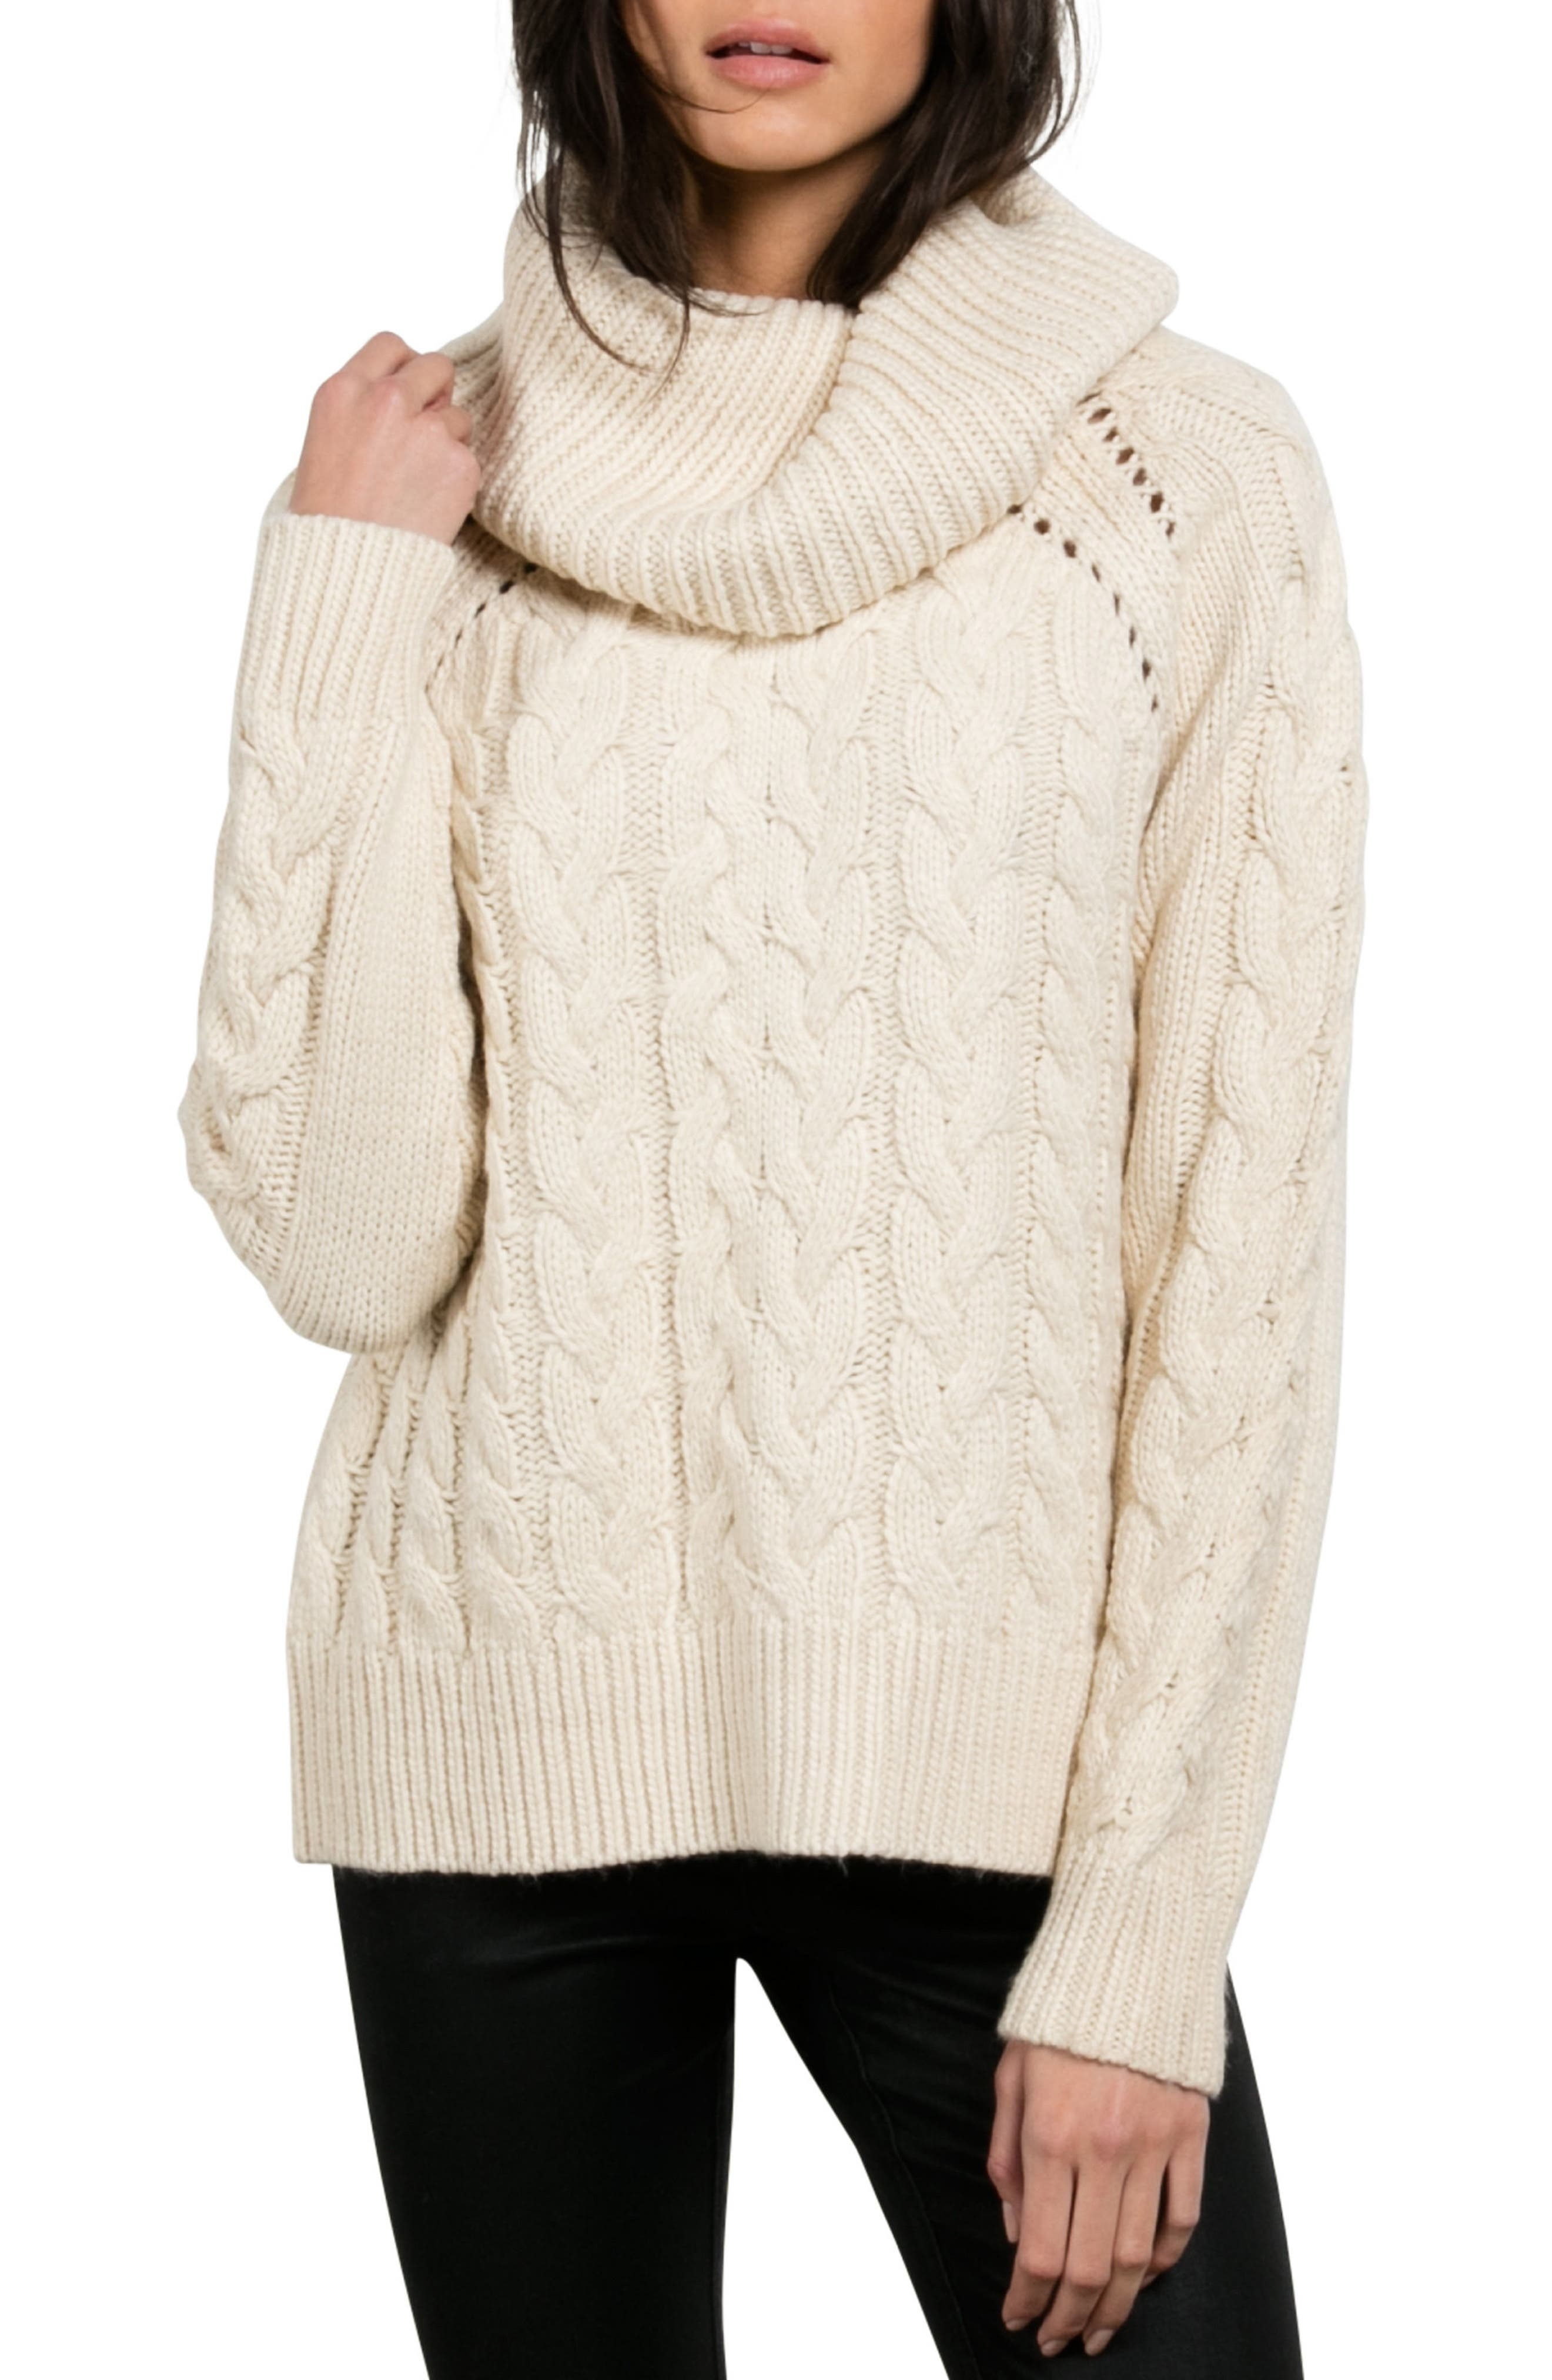 Snooders Sweater,                         Main,                         color, Oatmeal